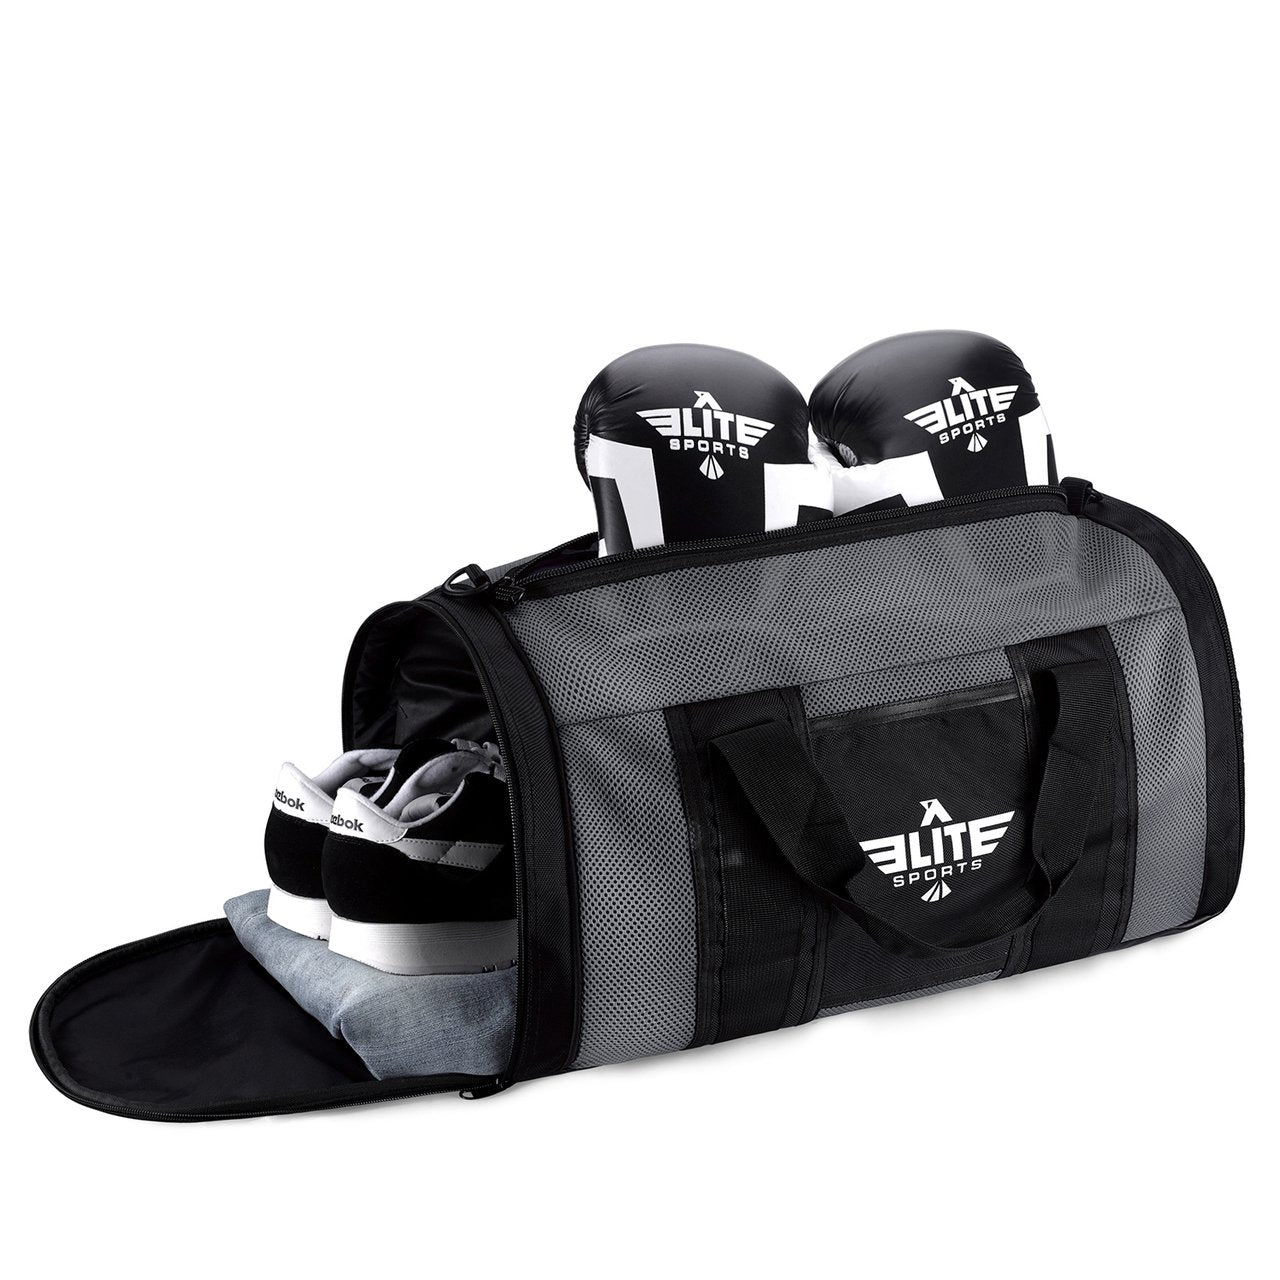 Load image into Gallery viewer, Elite Sports Mesh Gray Large Wrestling Gear Gym Bag